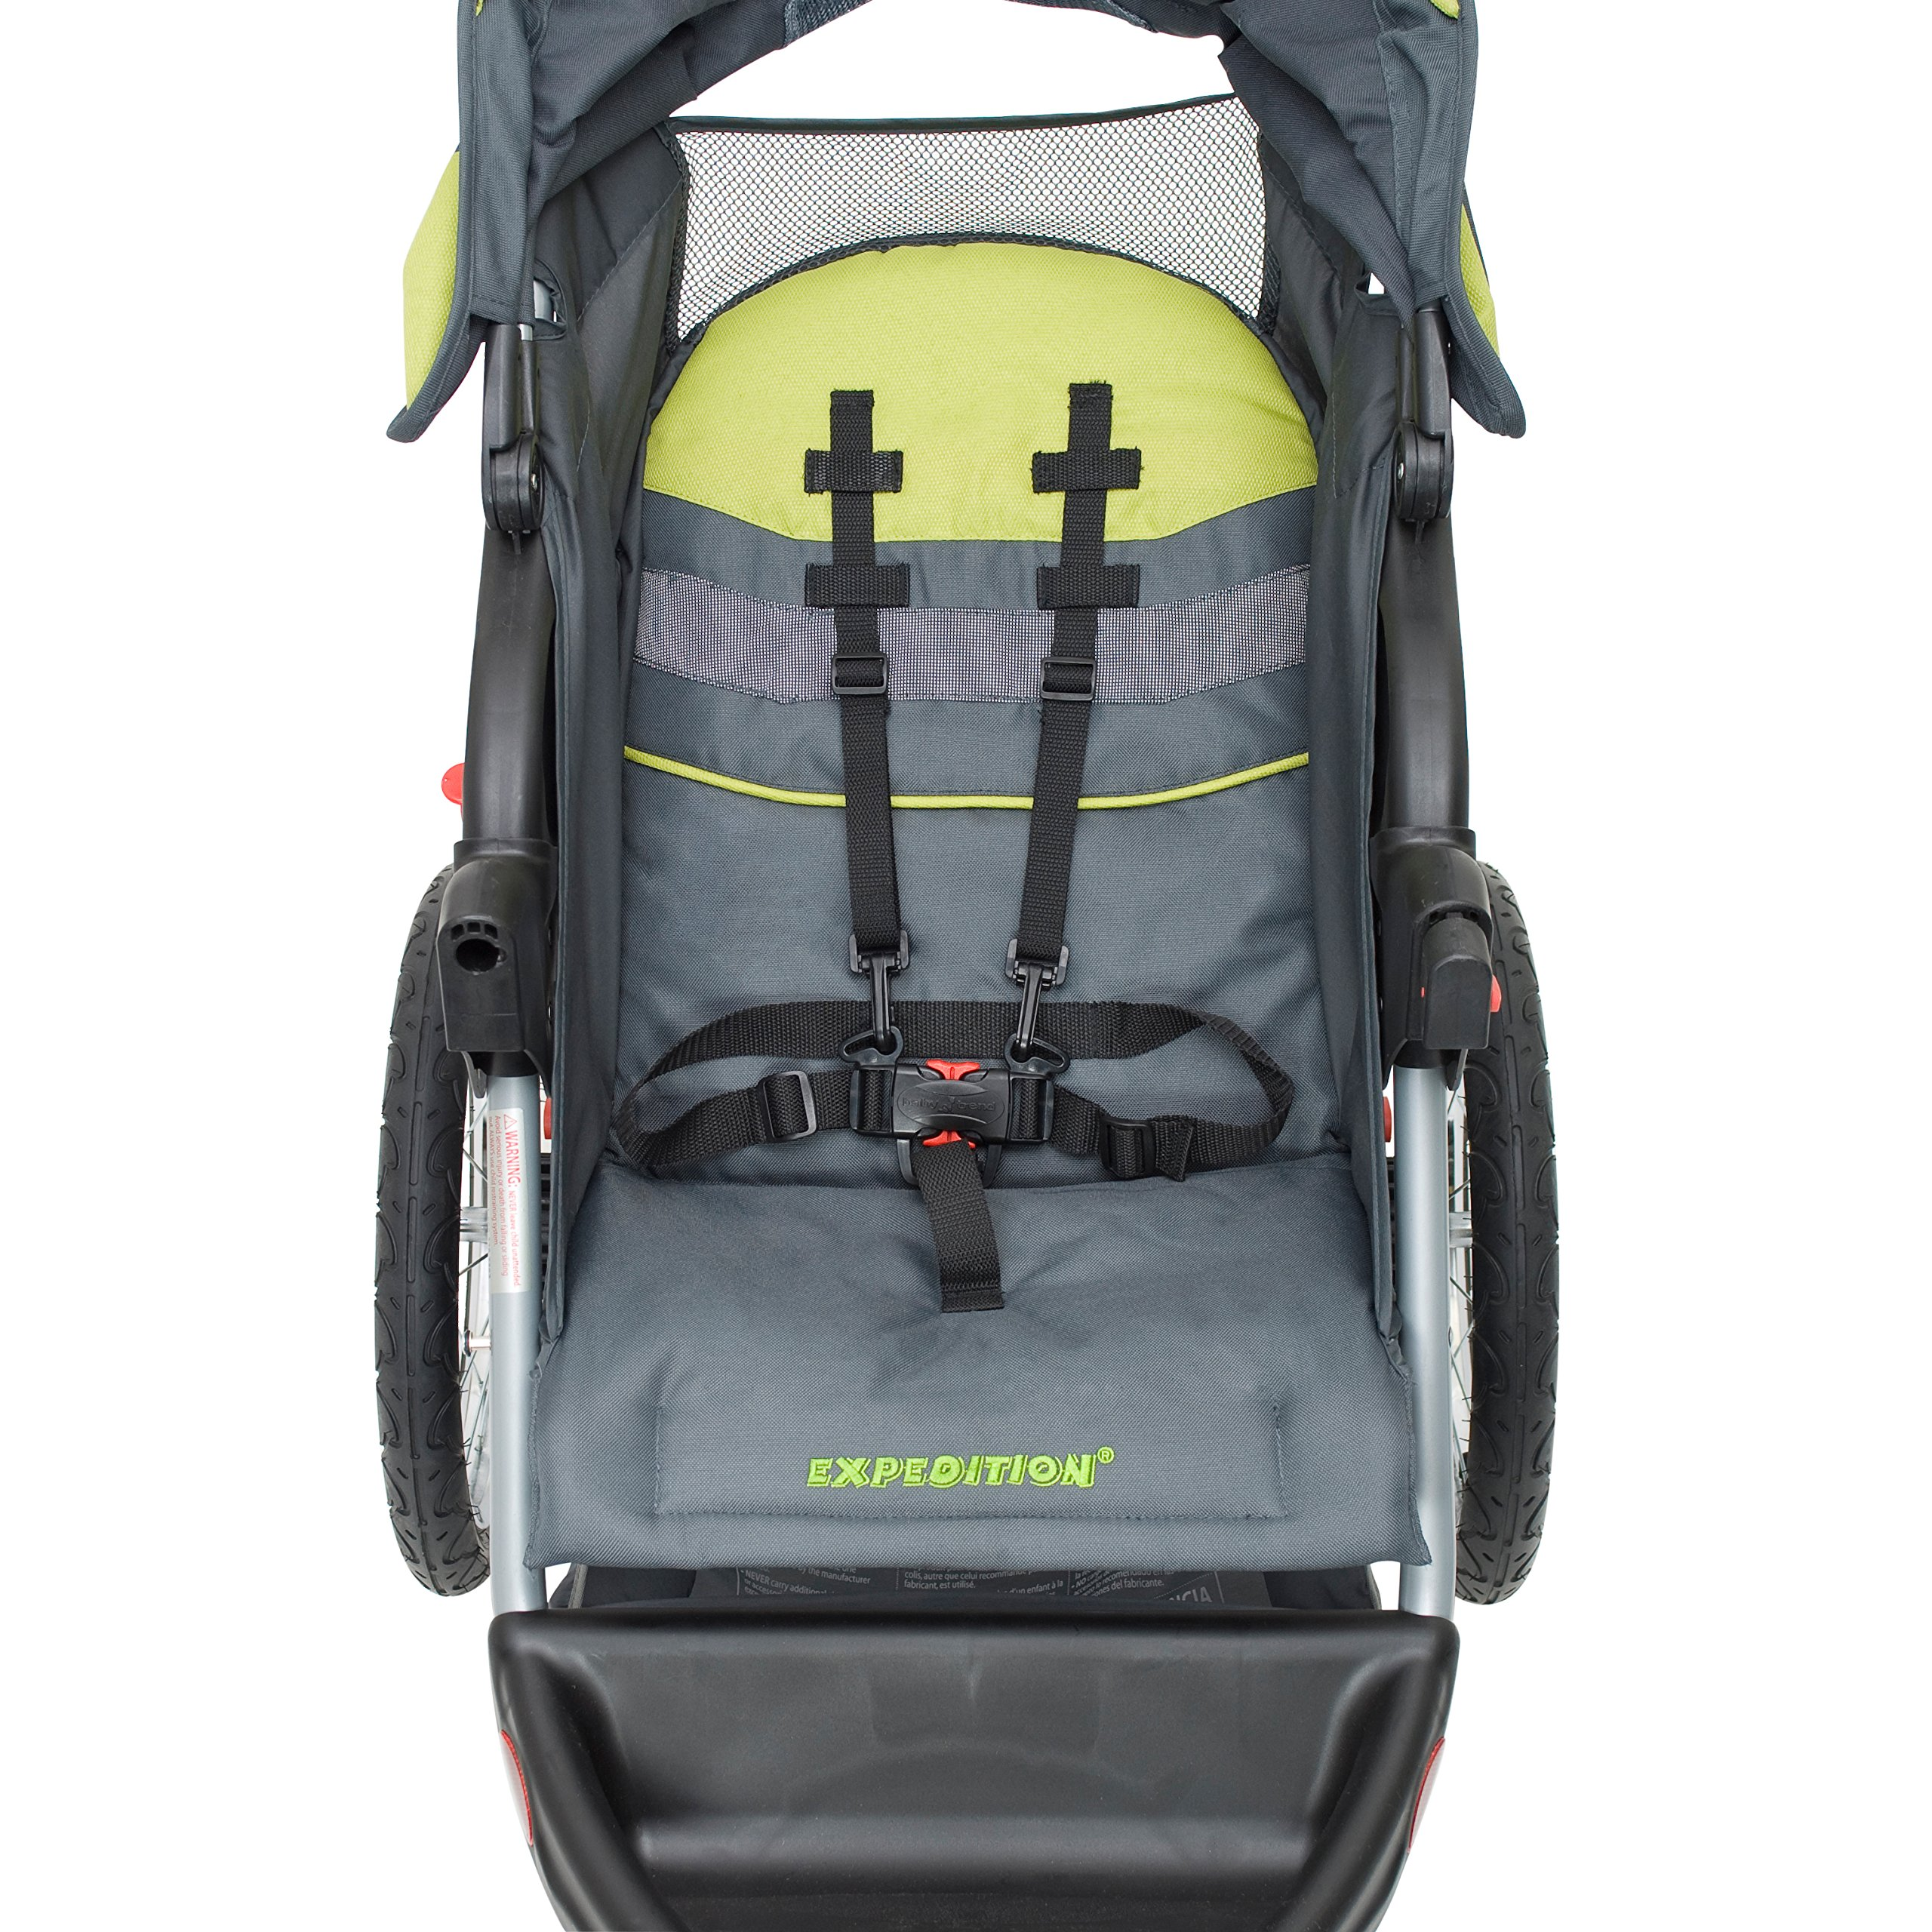 Baby Trend Expedition Jogger Stroller, Carbon - My ...